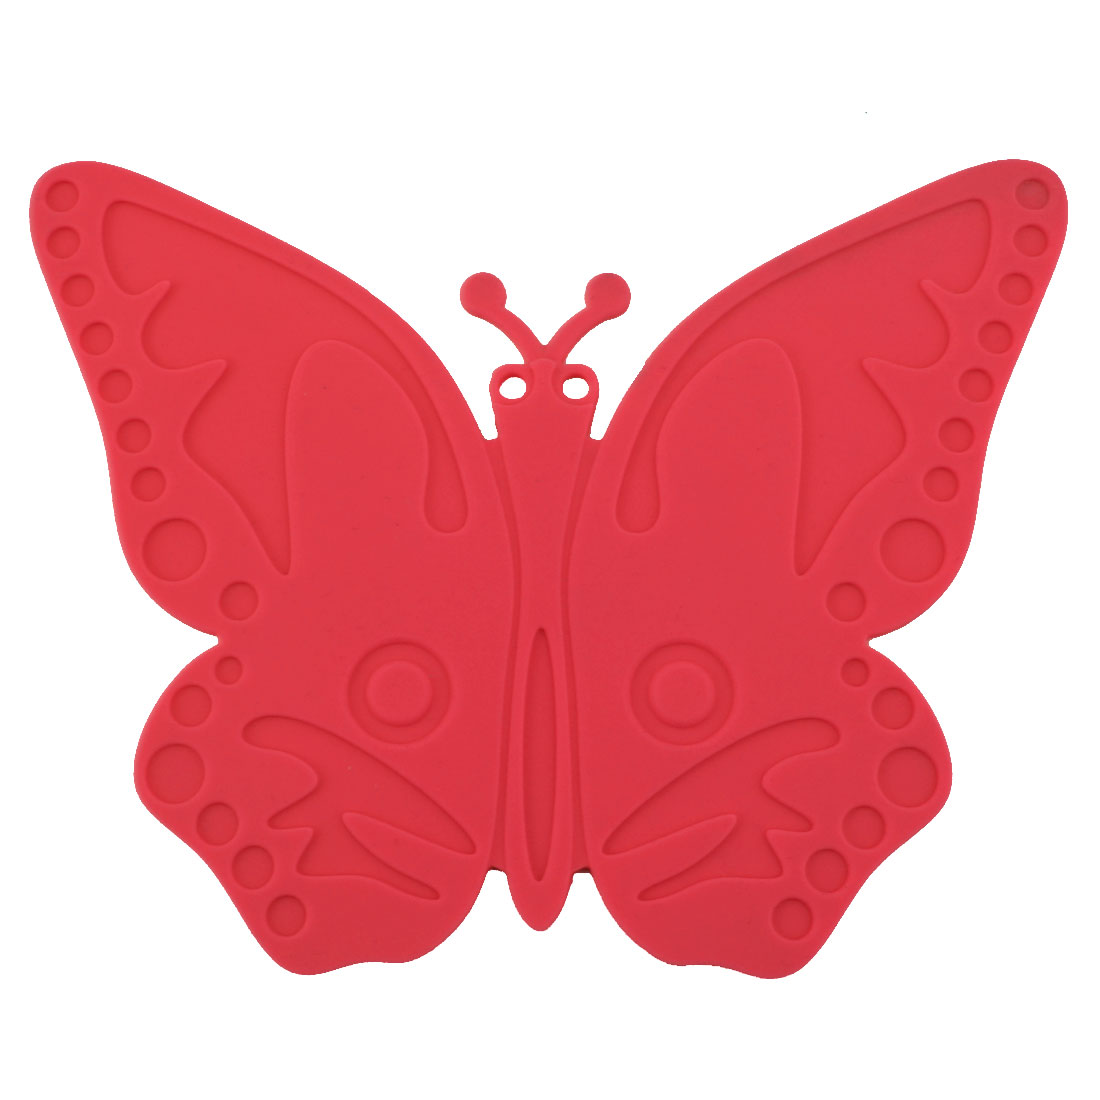 Silicone Butterfly Design Heat Resistant Mat Cup Coaster Cushion Placemat Red